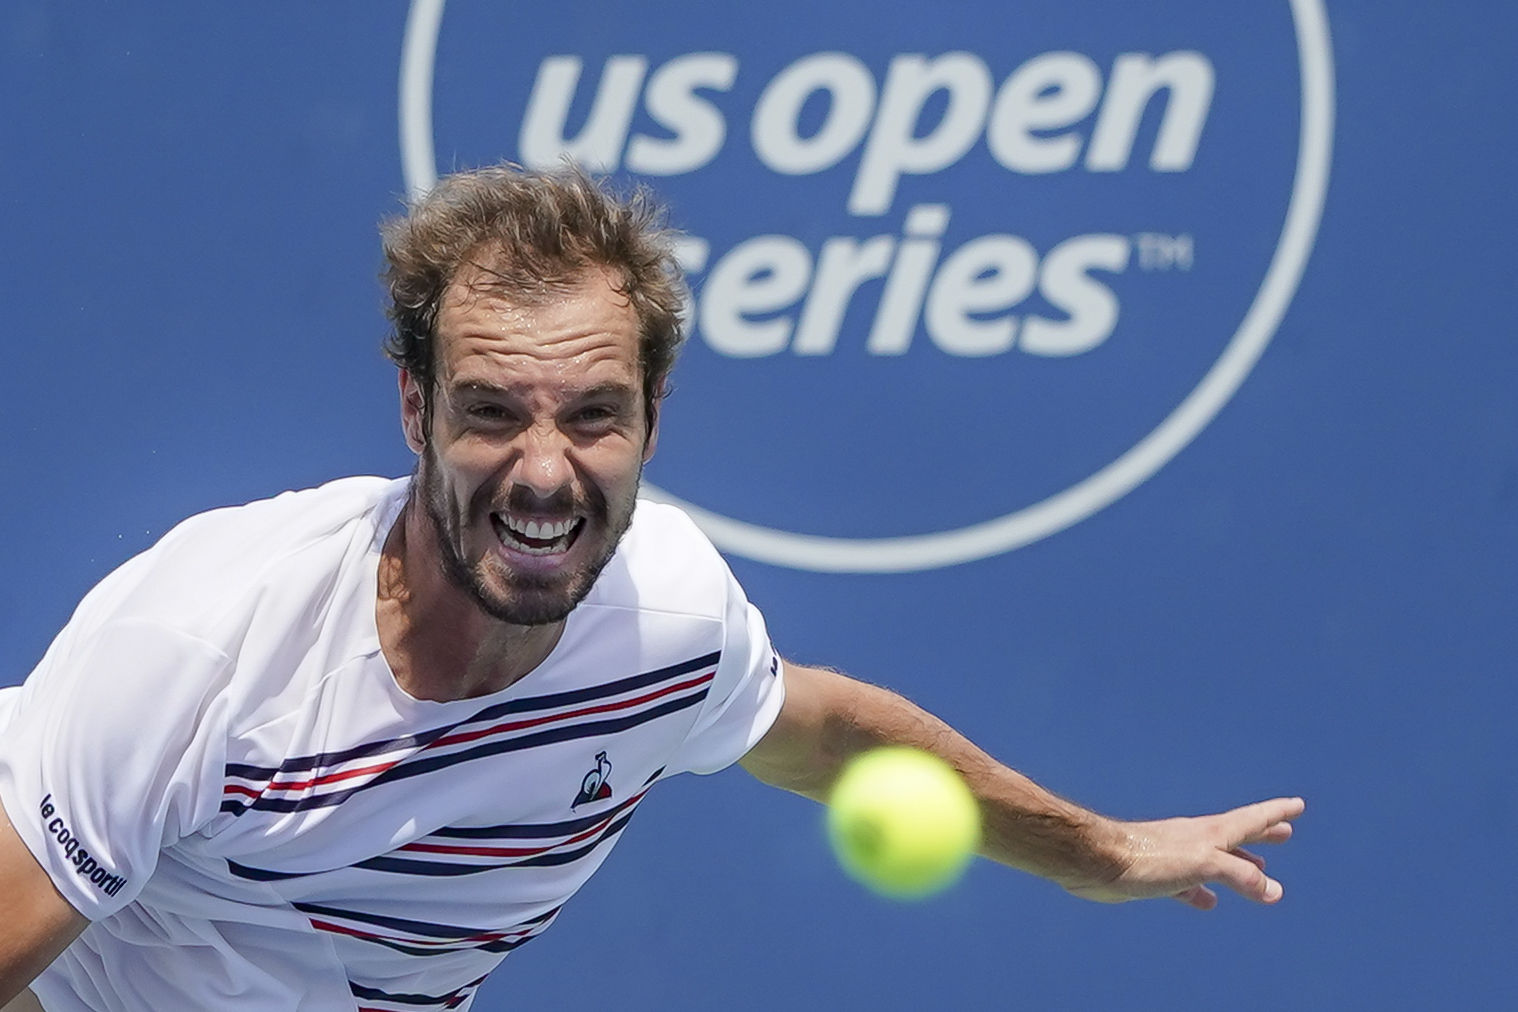 Richard Gasquet, of France, serves to Roberto Bautista Agut, of Spain, during the Western & Southern Open tennis tournament, Friday, Aug. 16, 2019, in Mason, Ohio. (AP Photo/John Minchillo)